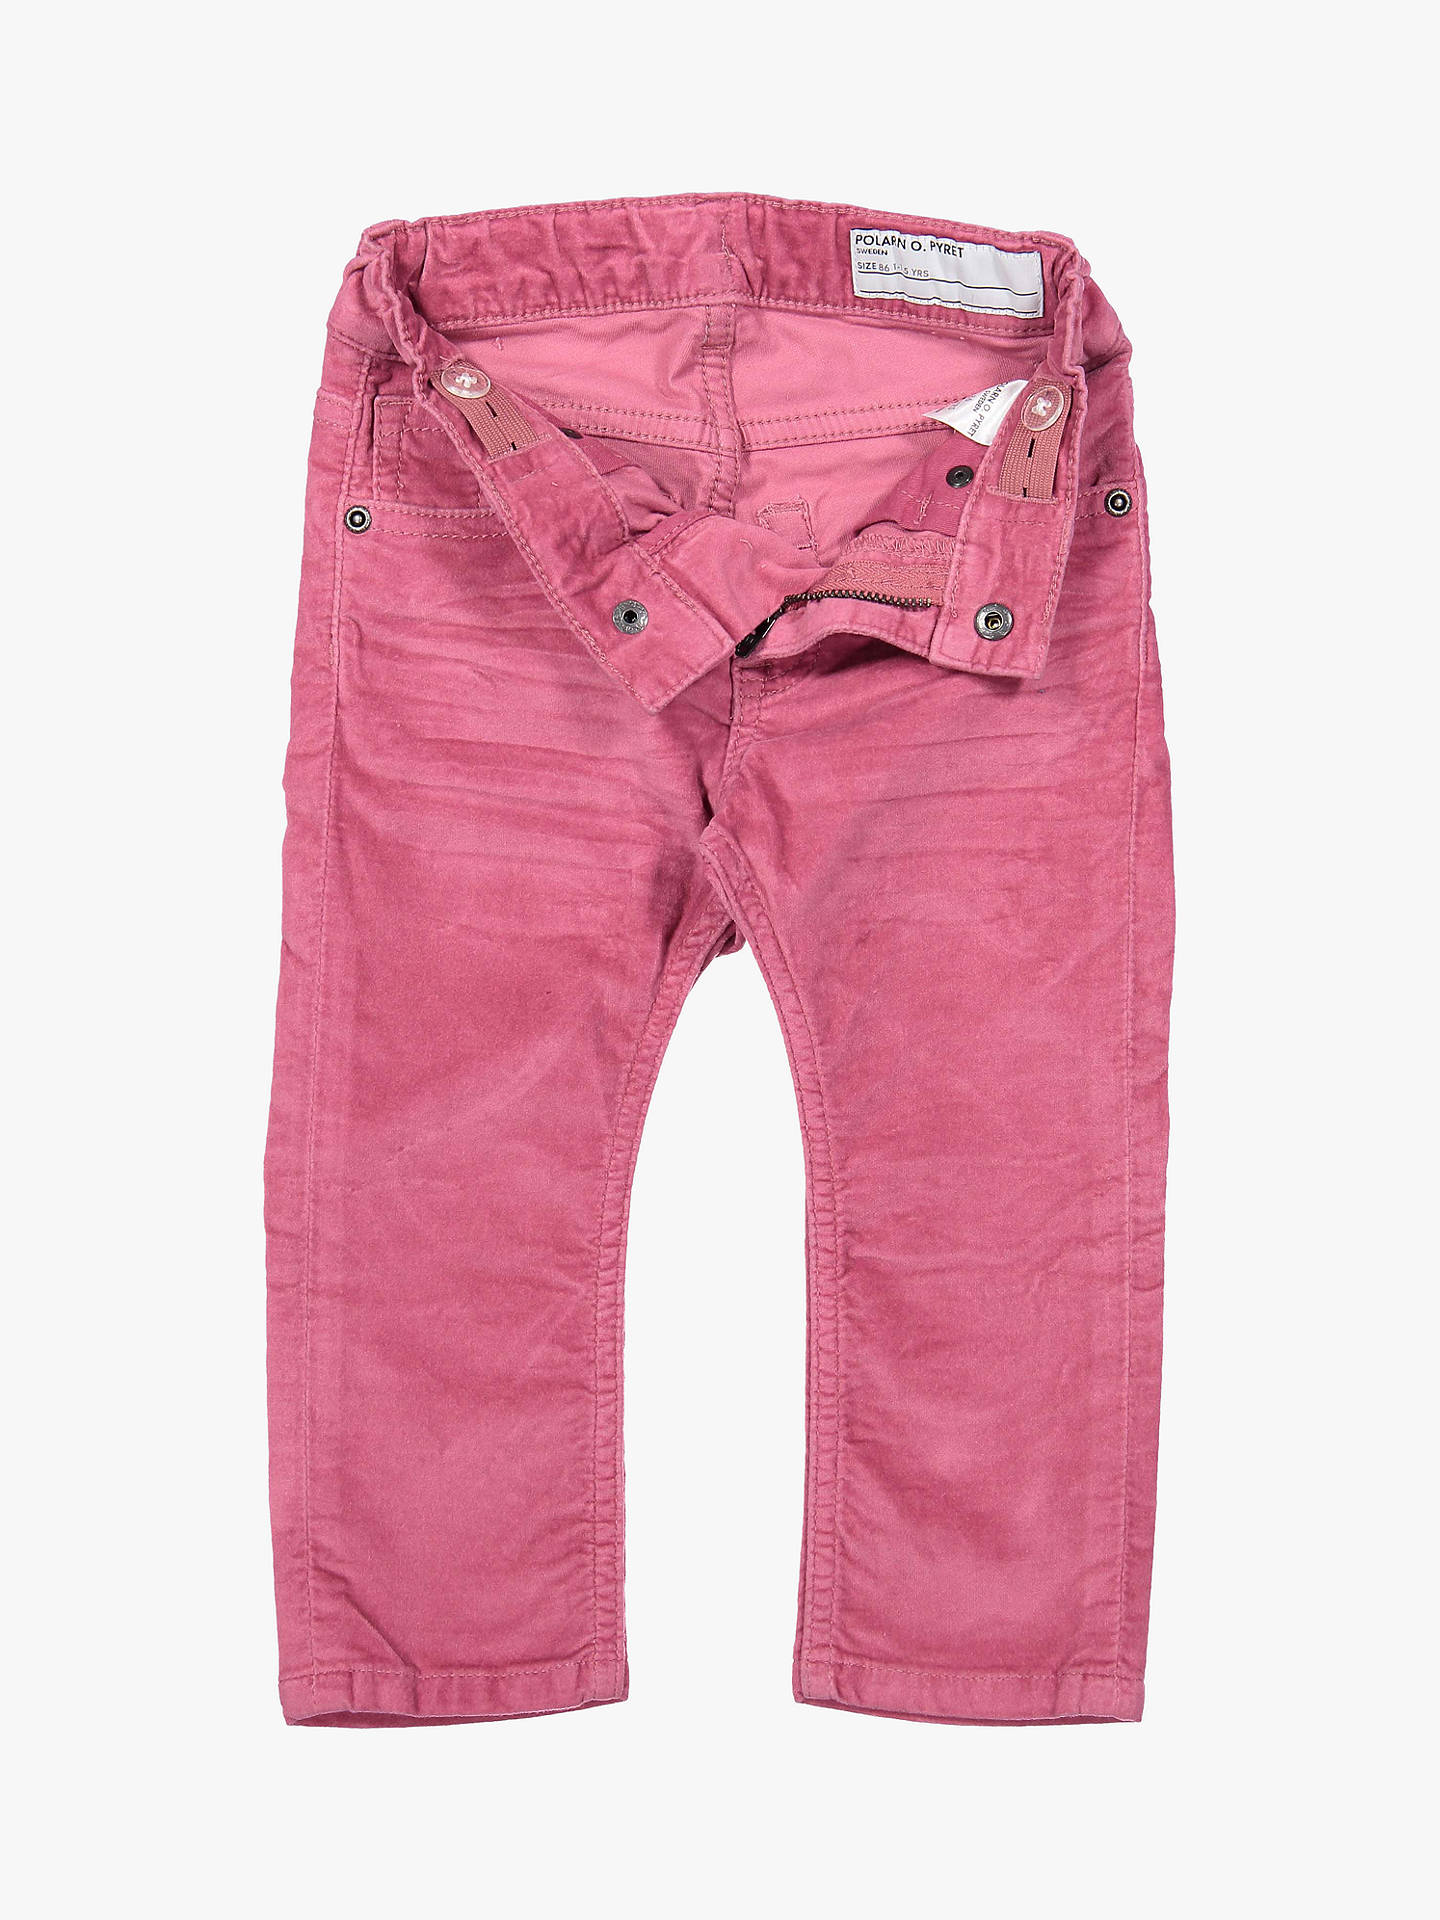 BuyPolarn O. Pyret Baby Velvet Trousers, Pink, 6-9 months Online at johnlewis.com